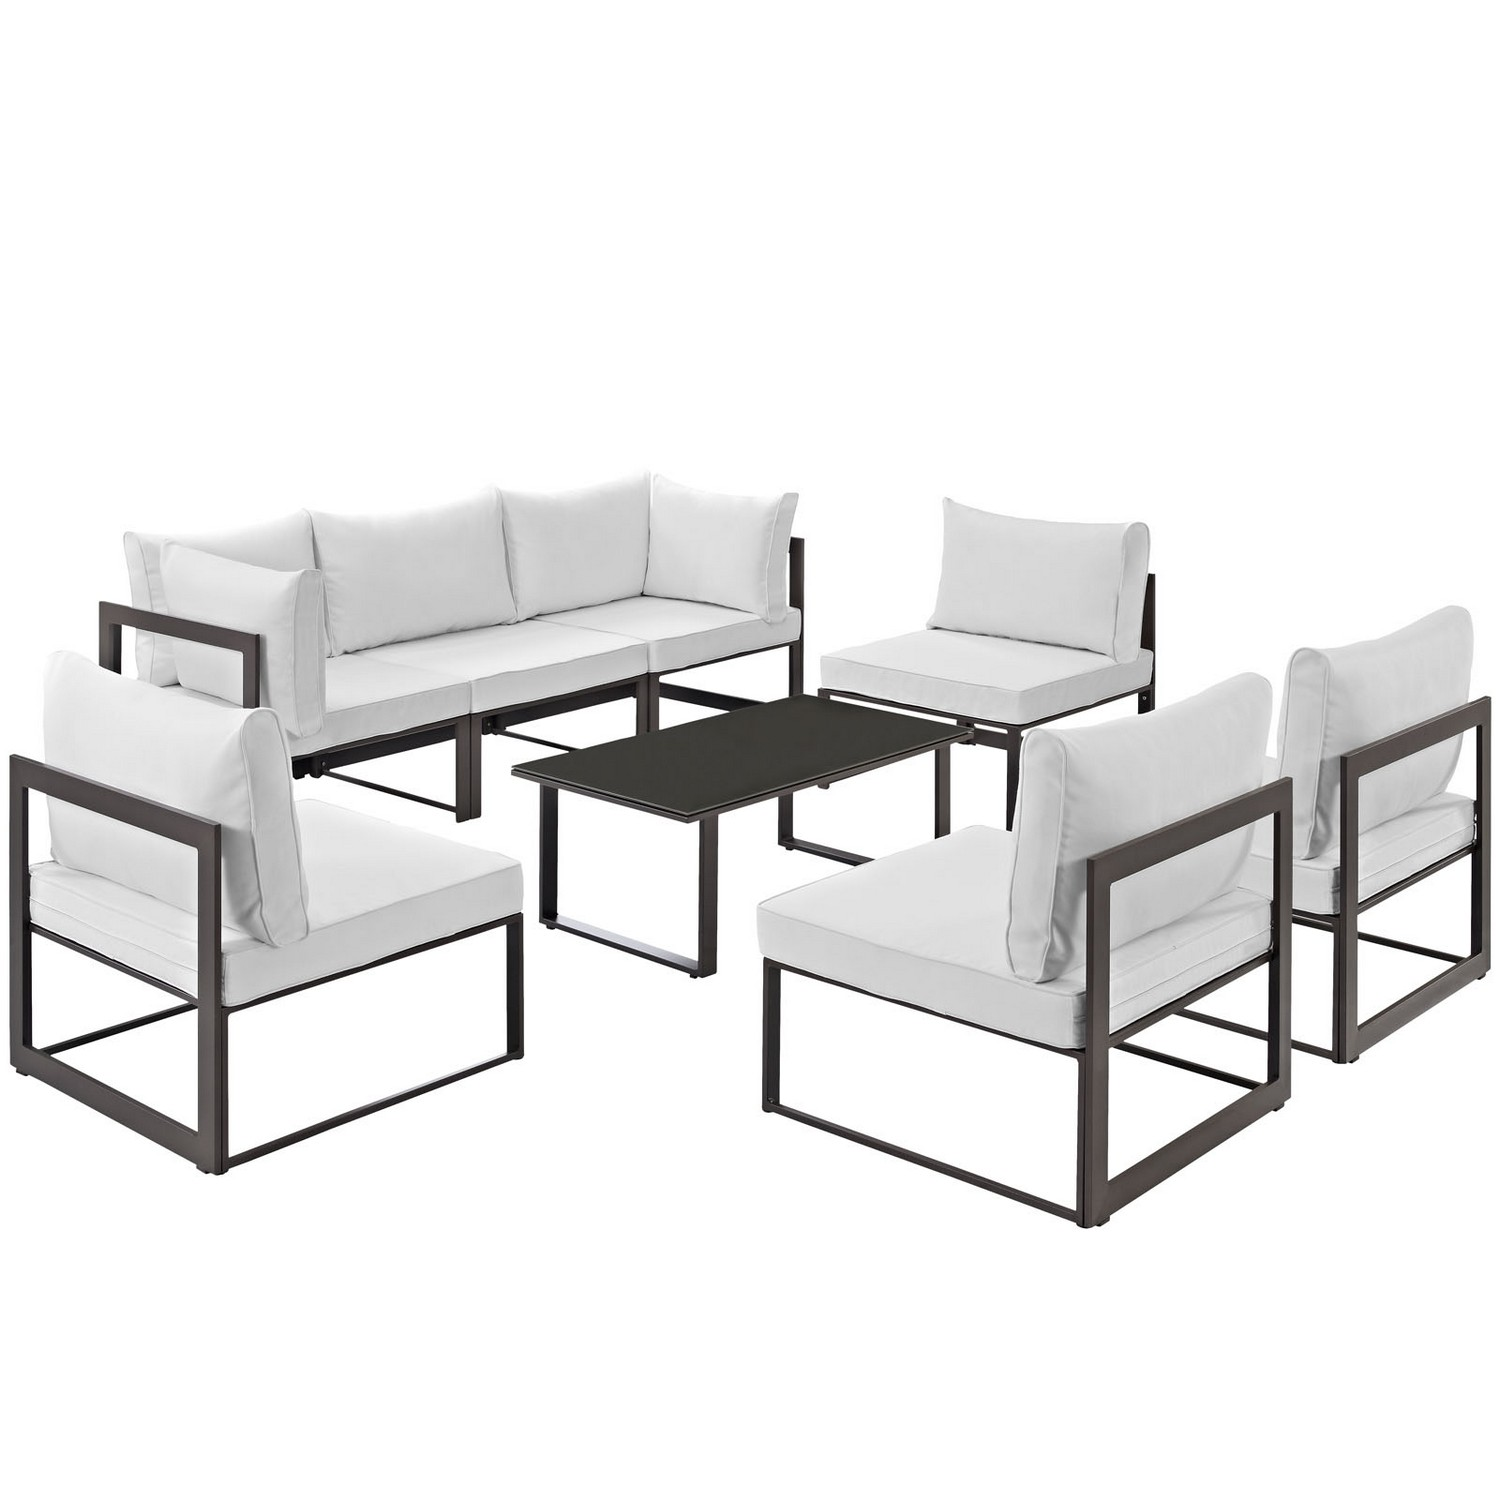 Modway Fortuna 8 Piece Outdoor Patio Sectional Sofa Set - Brown/White